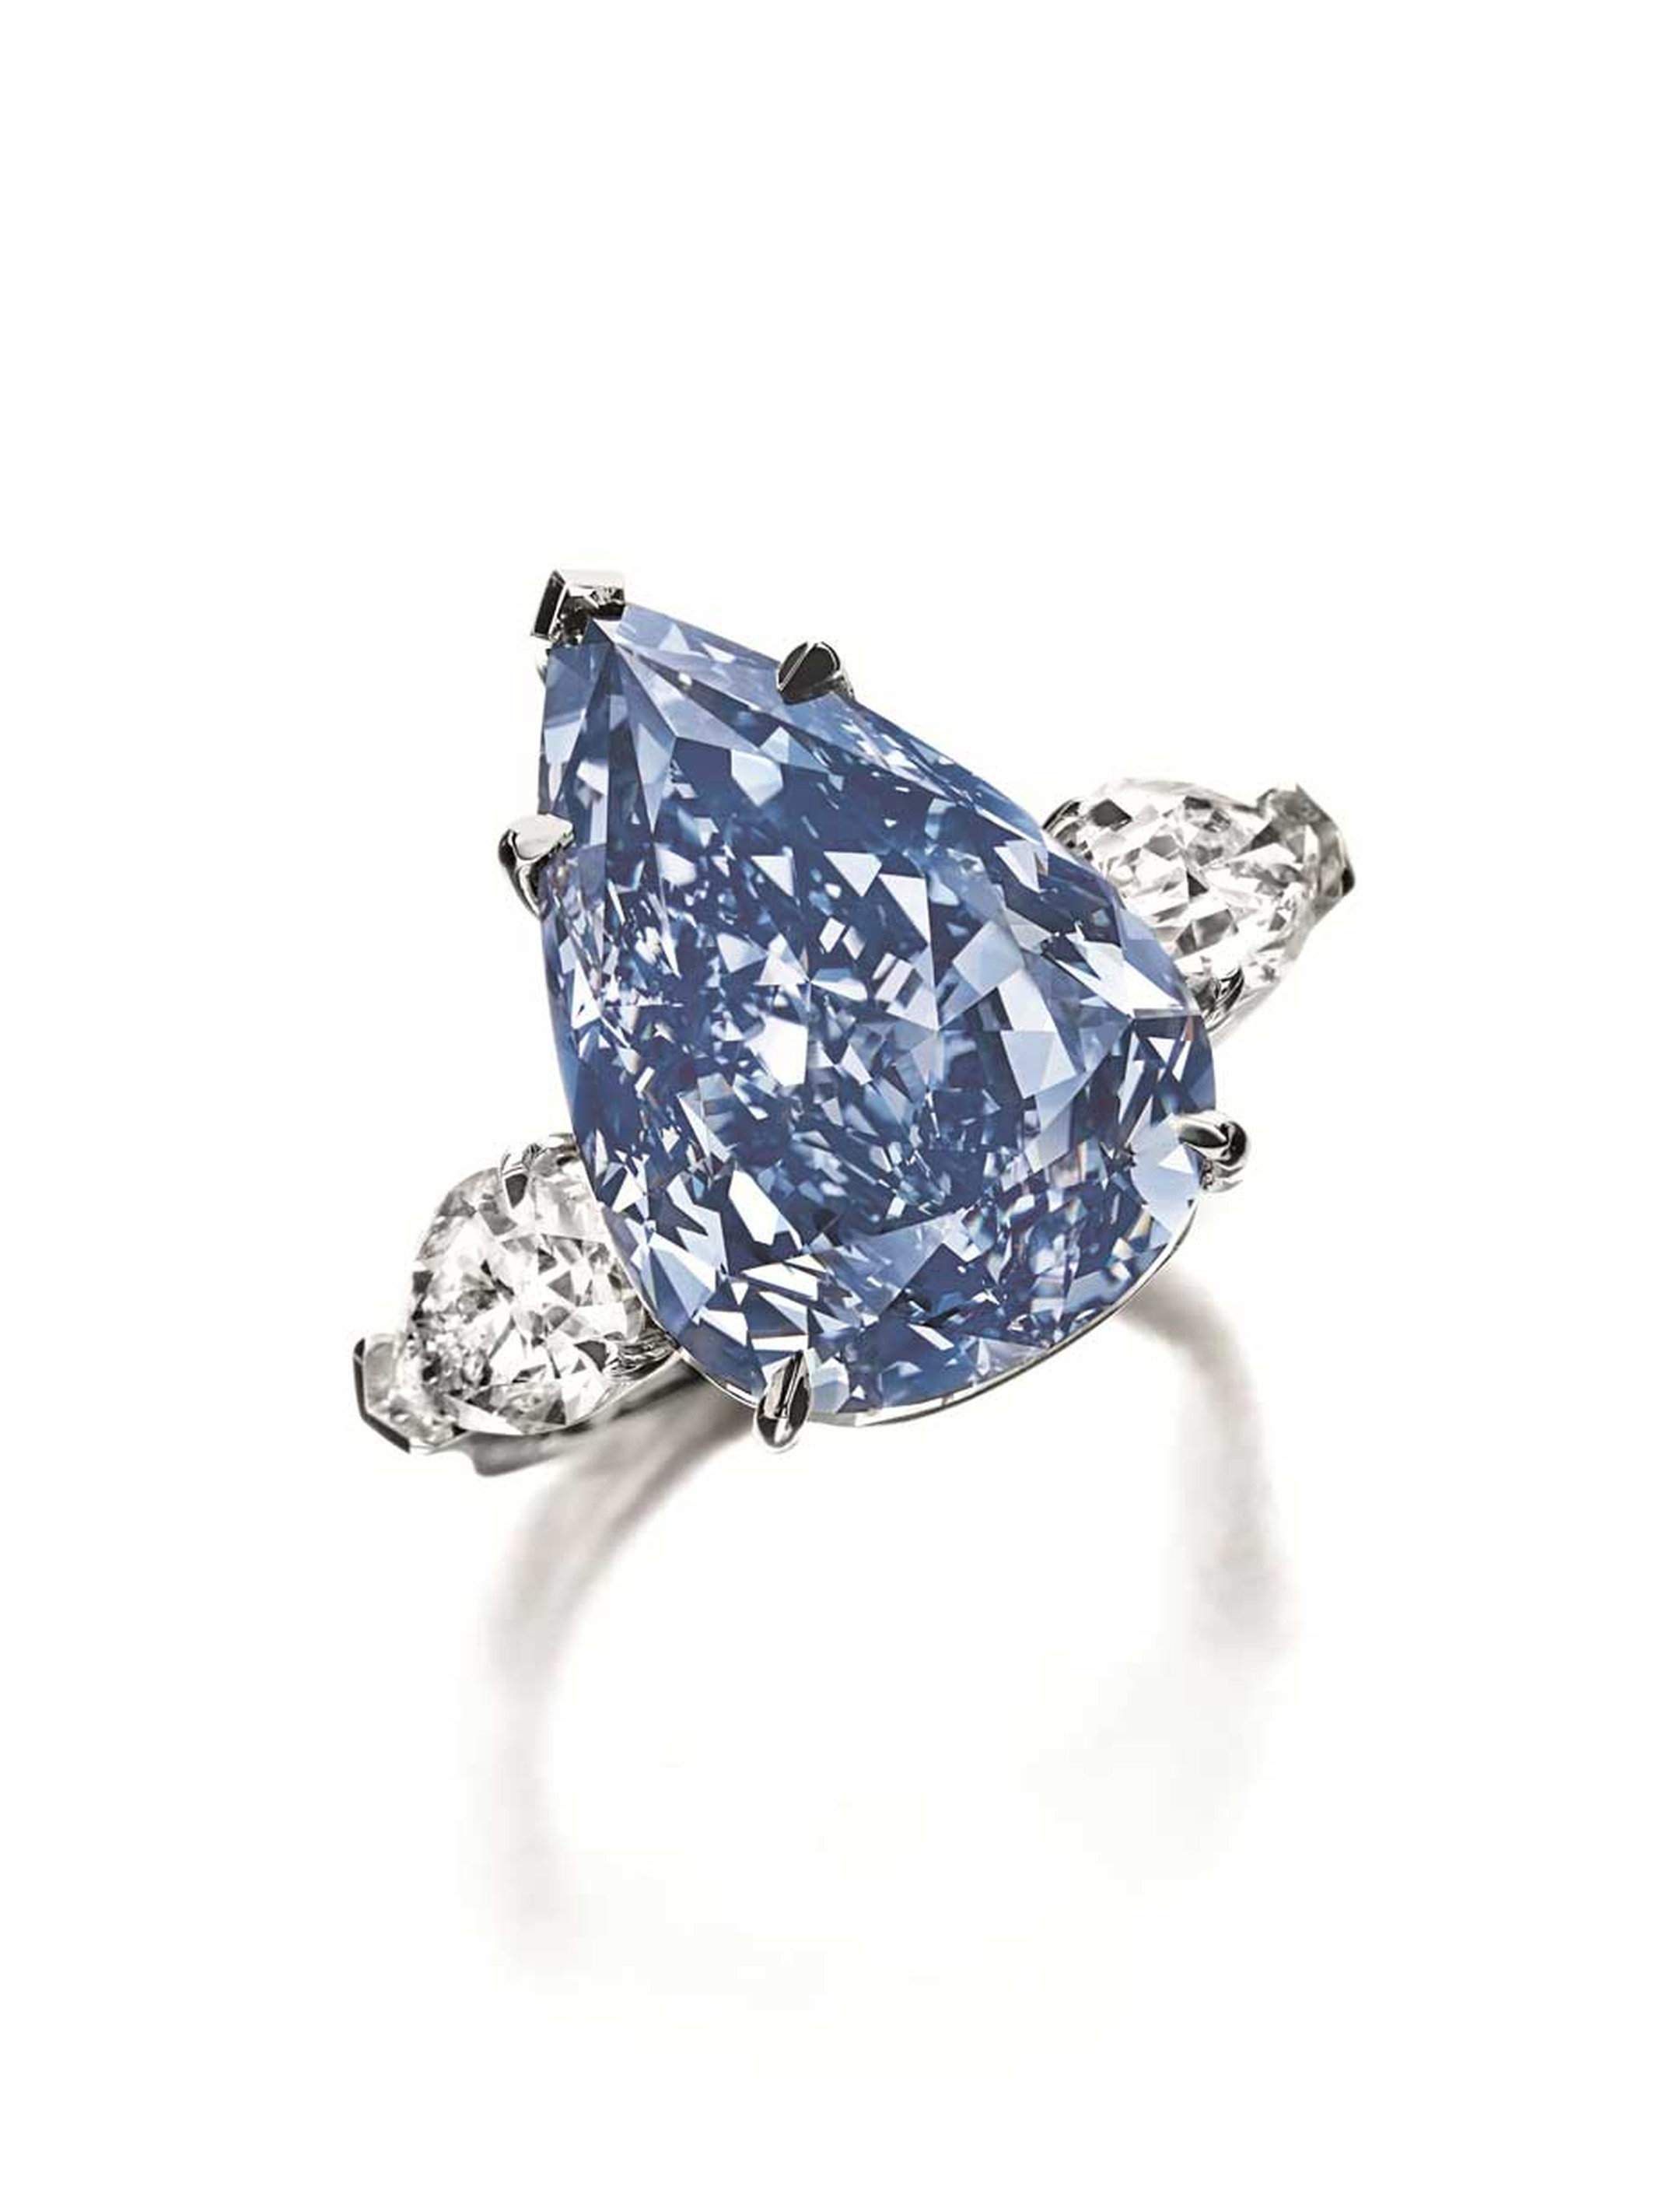 Weighing in at 13.22ct, the flawless, Fancy Vivid blue diamond fetched a staggering $1.79m per carat.